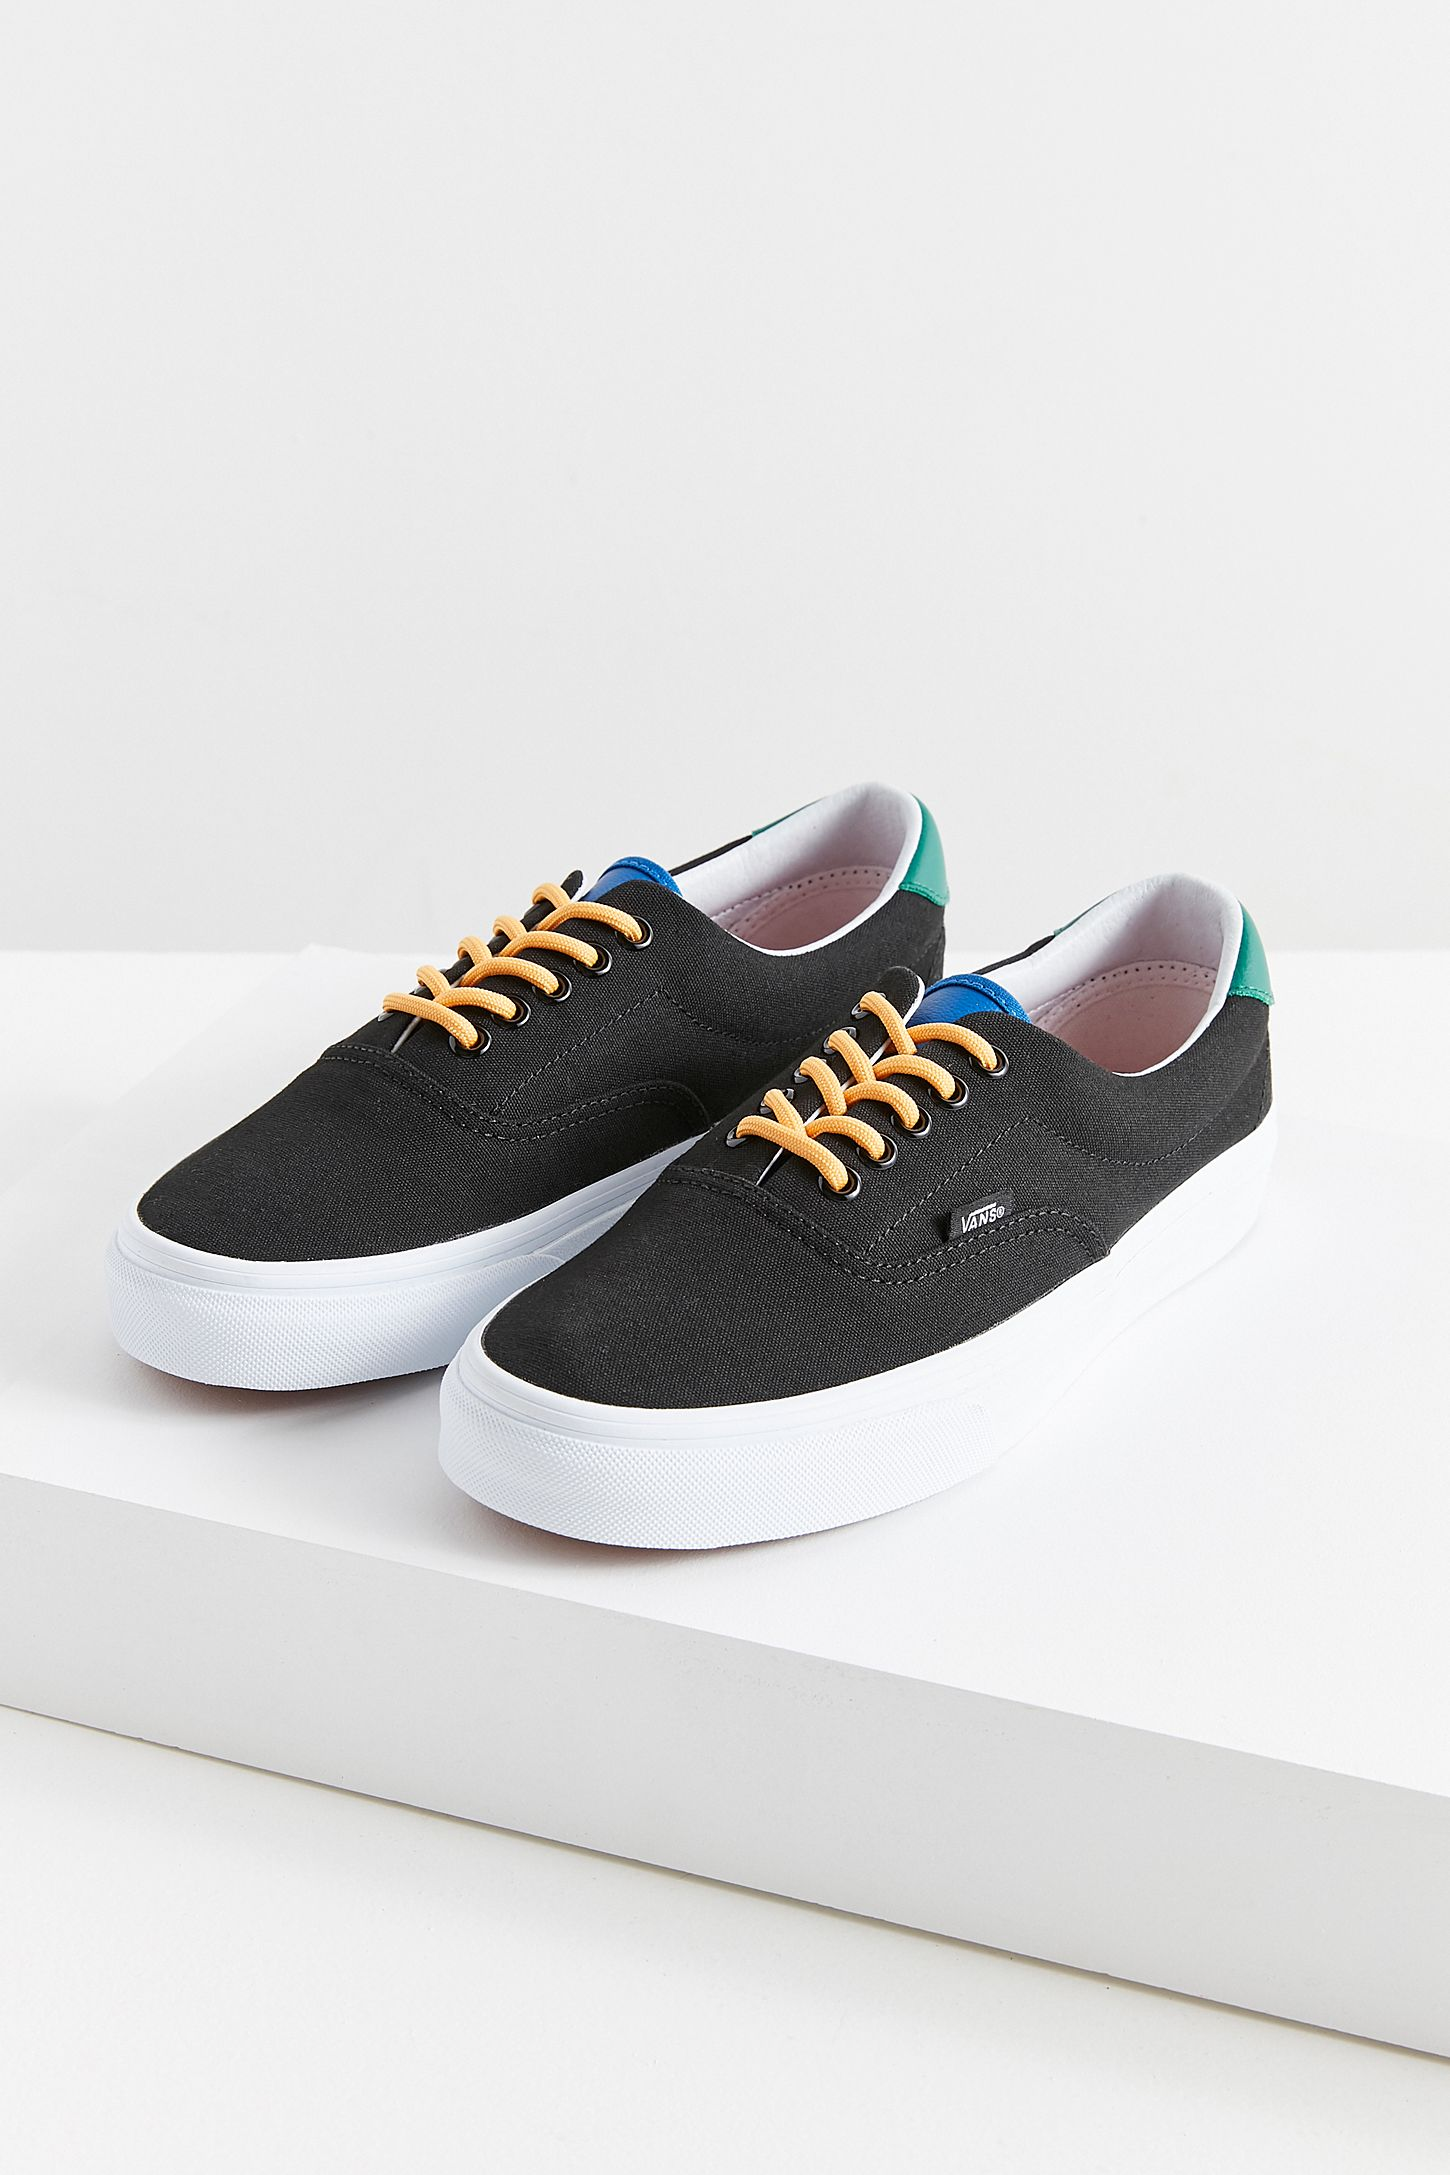 5d850fdce8 Get Our Emails. Sign up to receive Urban Outfitters ...